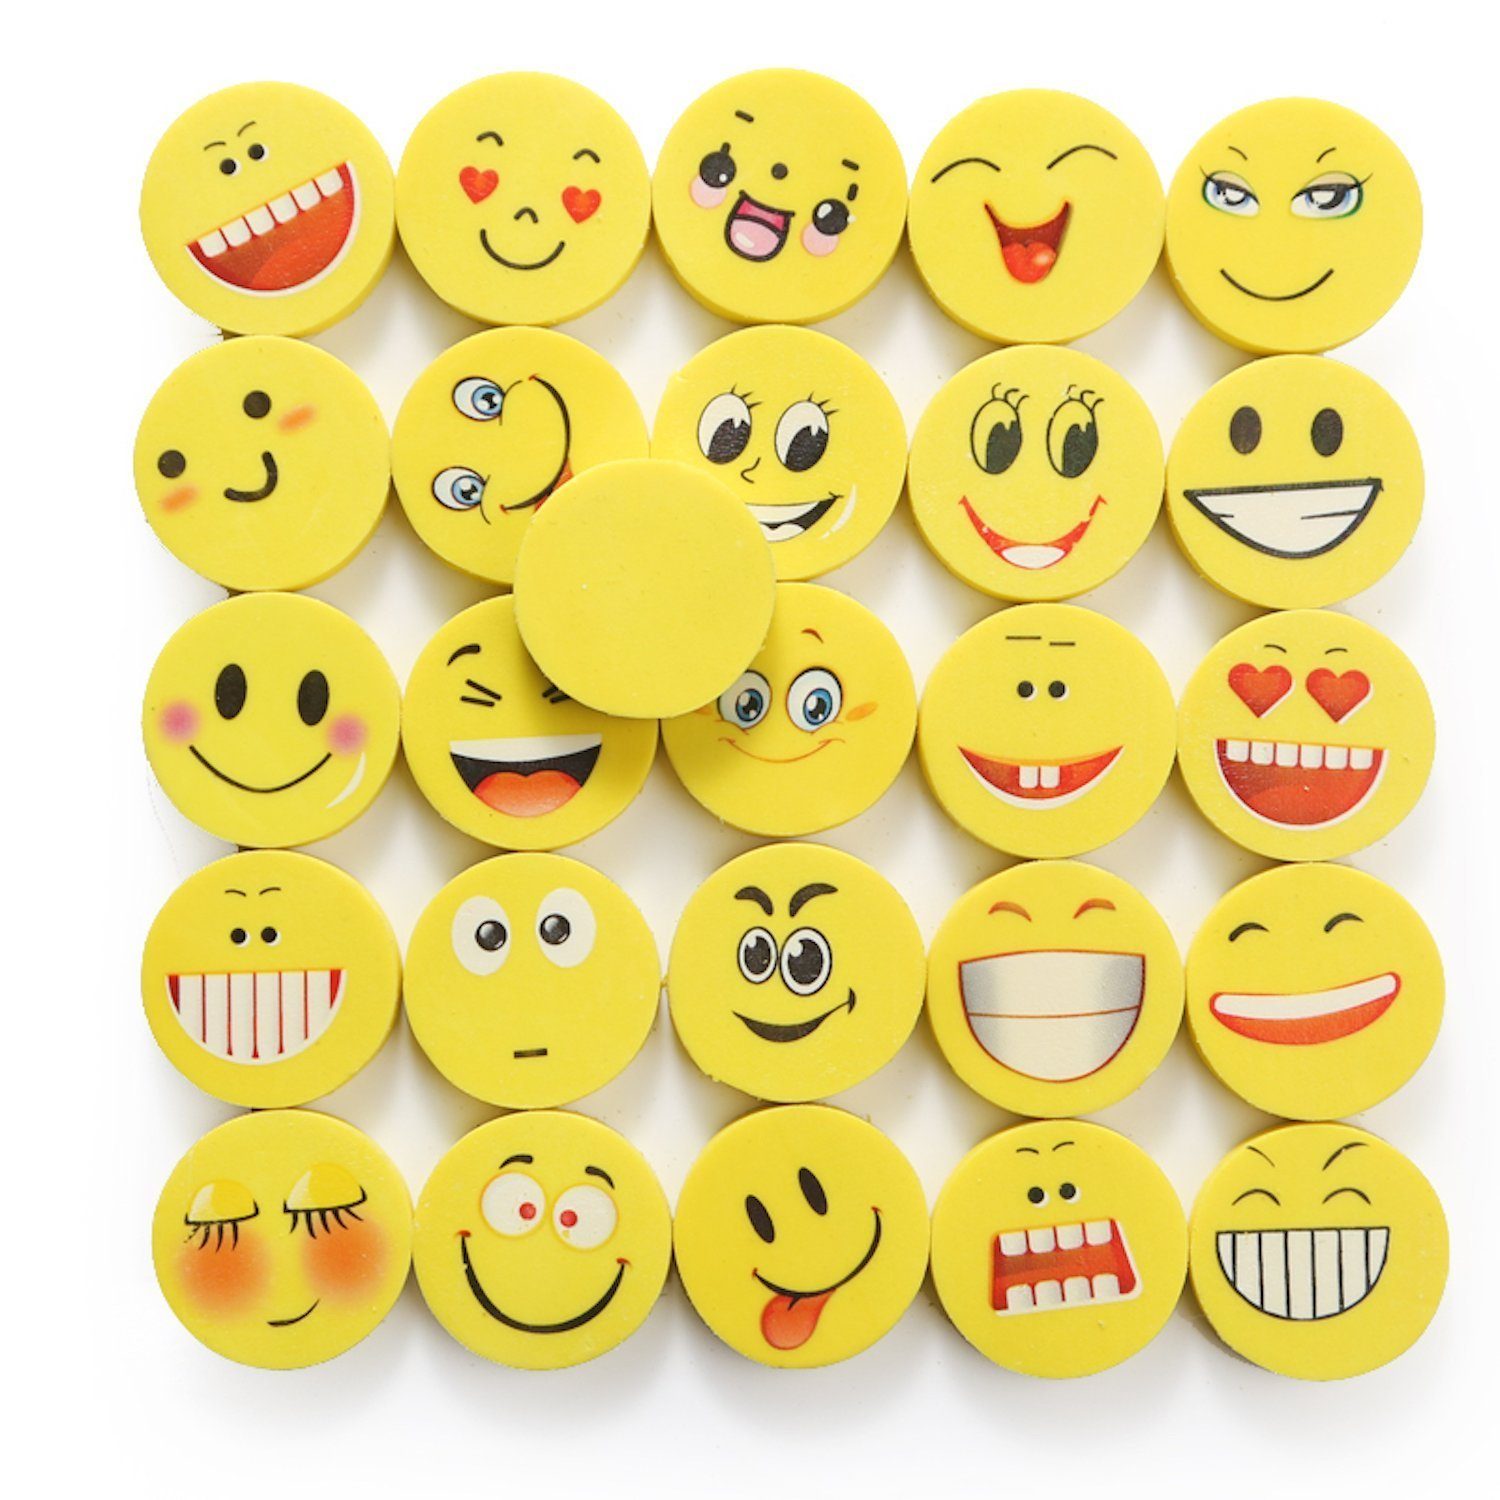 24 Pieces Emoji Erasers Set | Beyond Dreams Laughing Emoticon Eraser for Children | Birthday Gift Give Aways | Colorful Funny Rubbers | Smiley Toys for Kids |